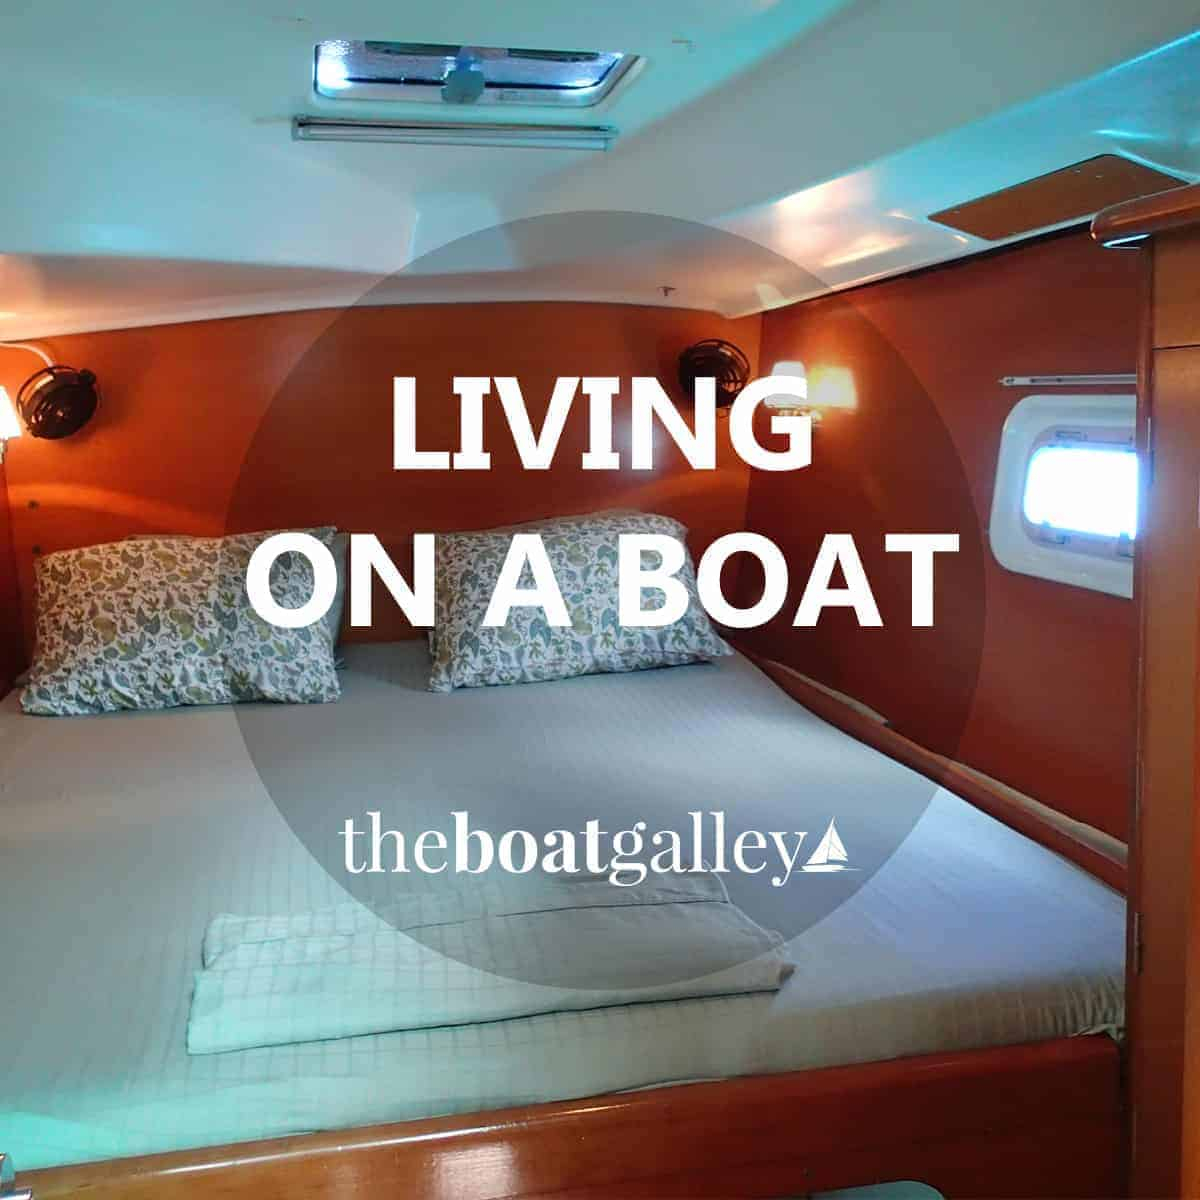 Boat Provisioning Spreadsheet For Living On A Boat  The Boat Galley